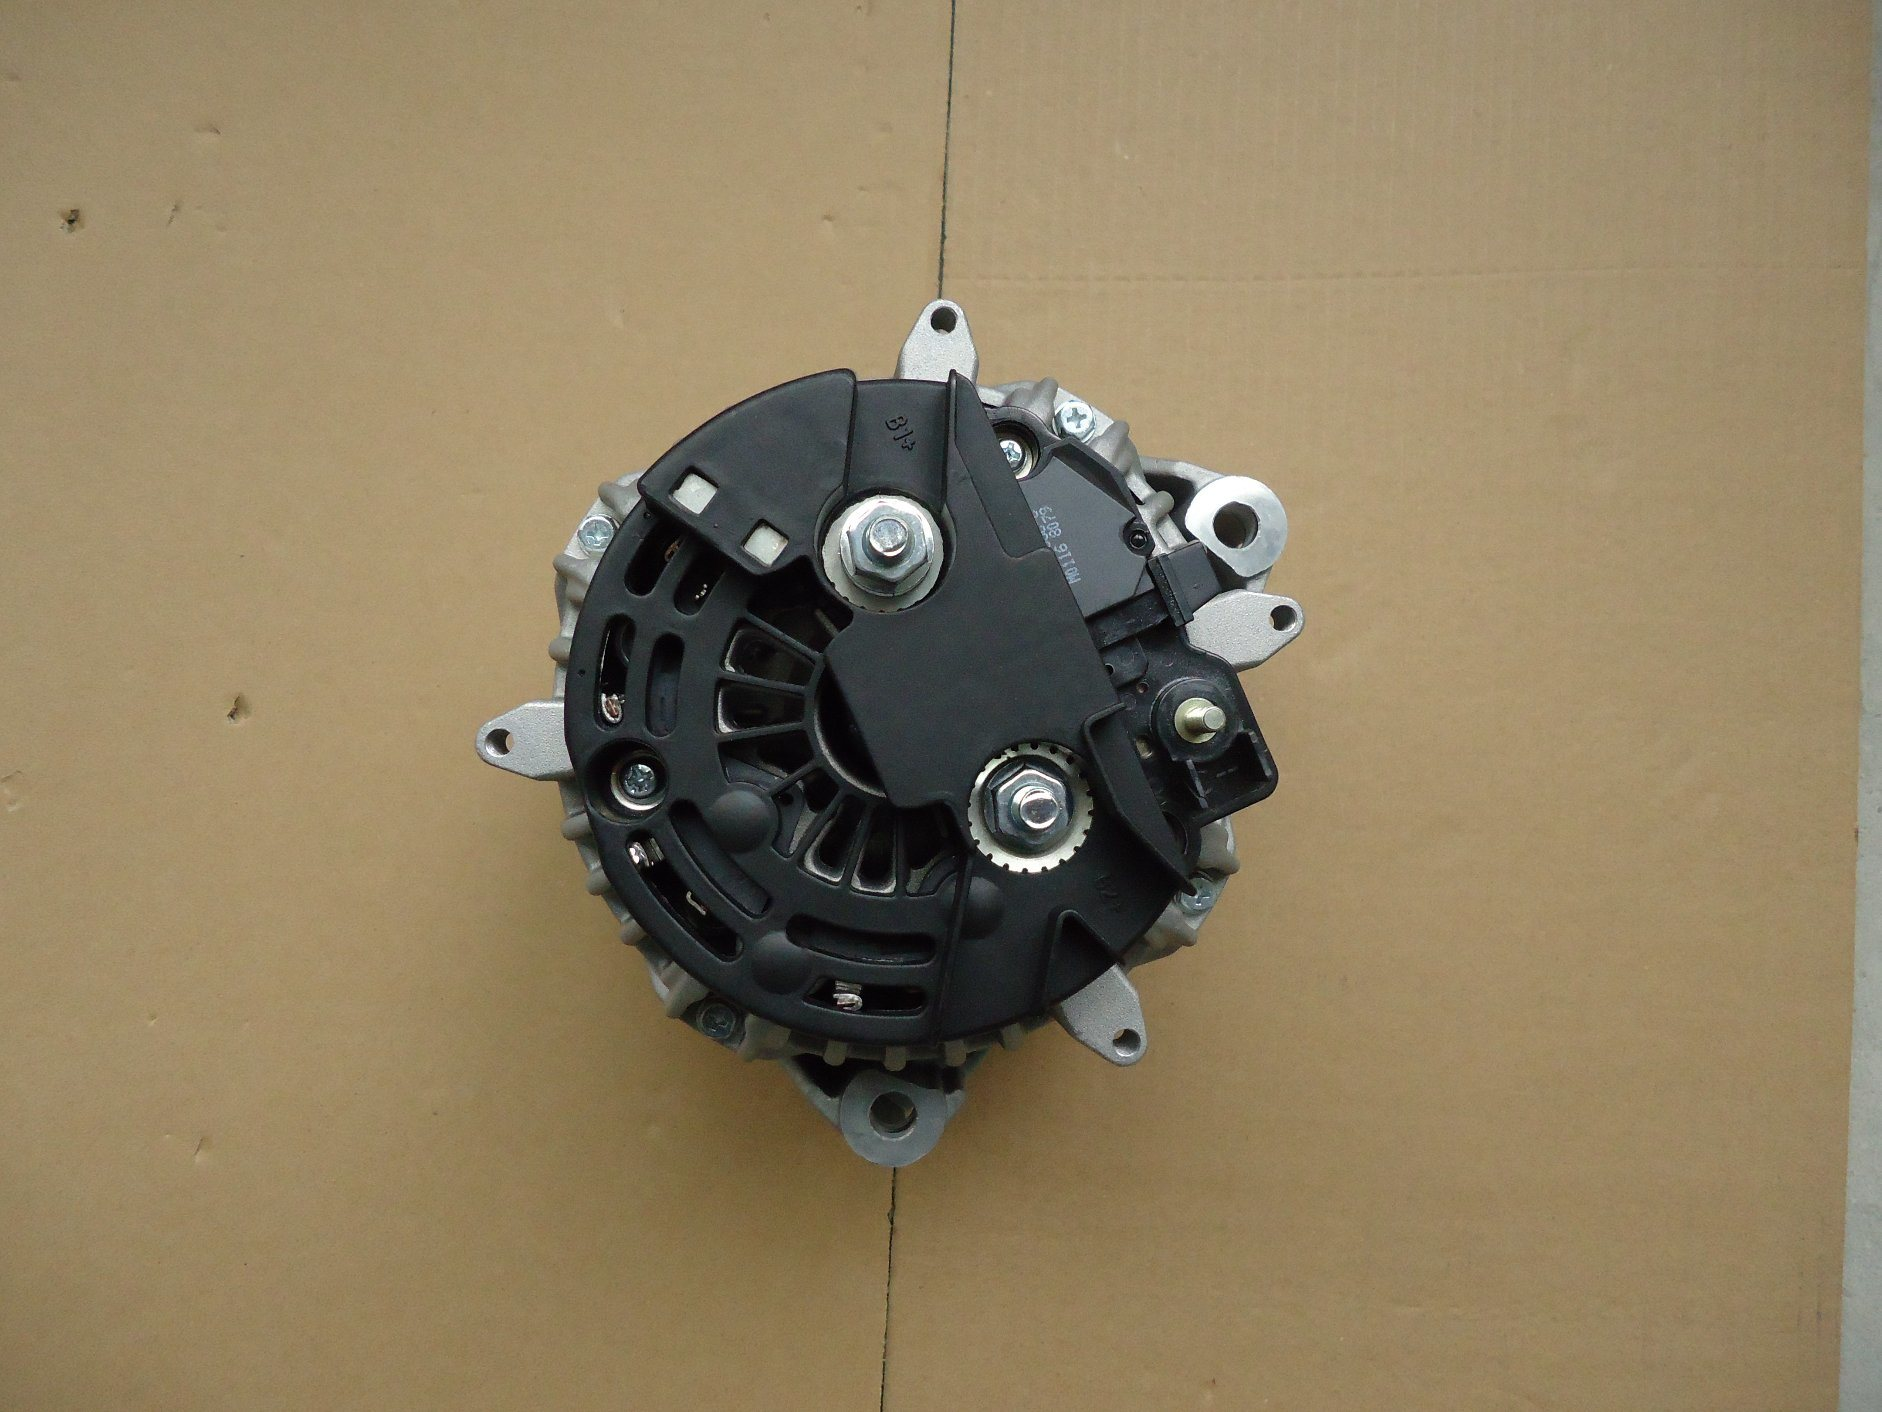 12V 200A Alternator for Bosch John Lester 12795 0124625029